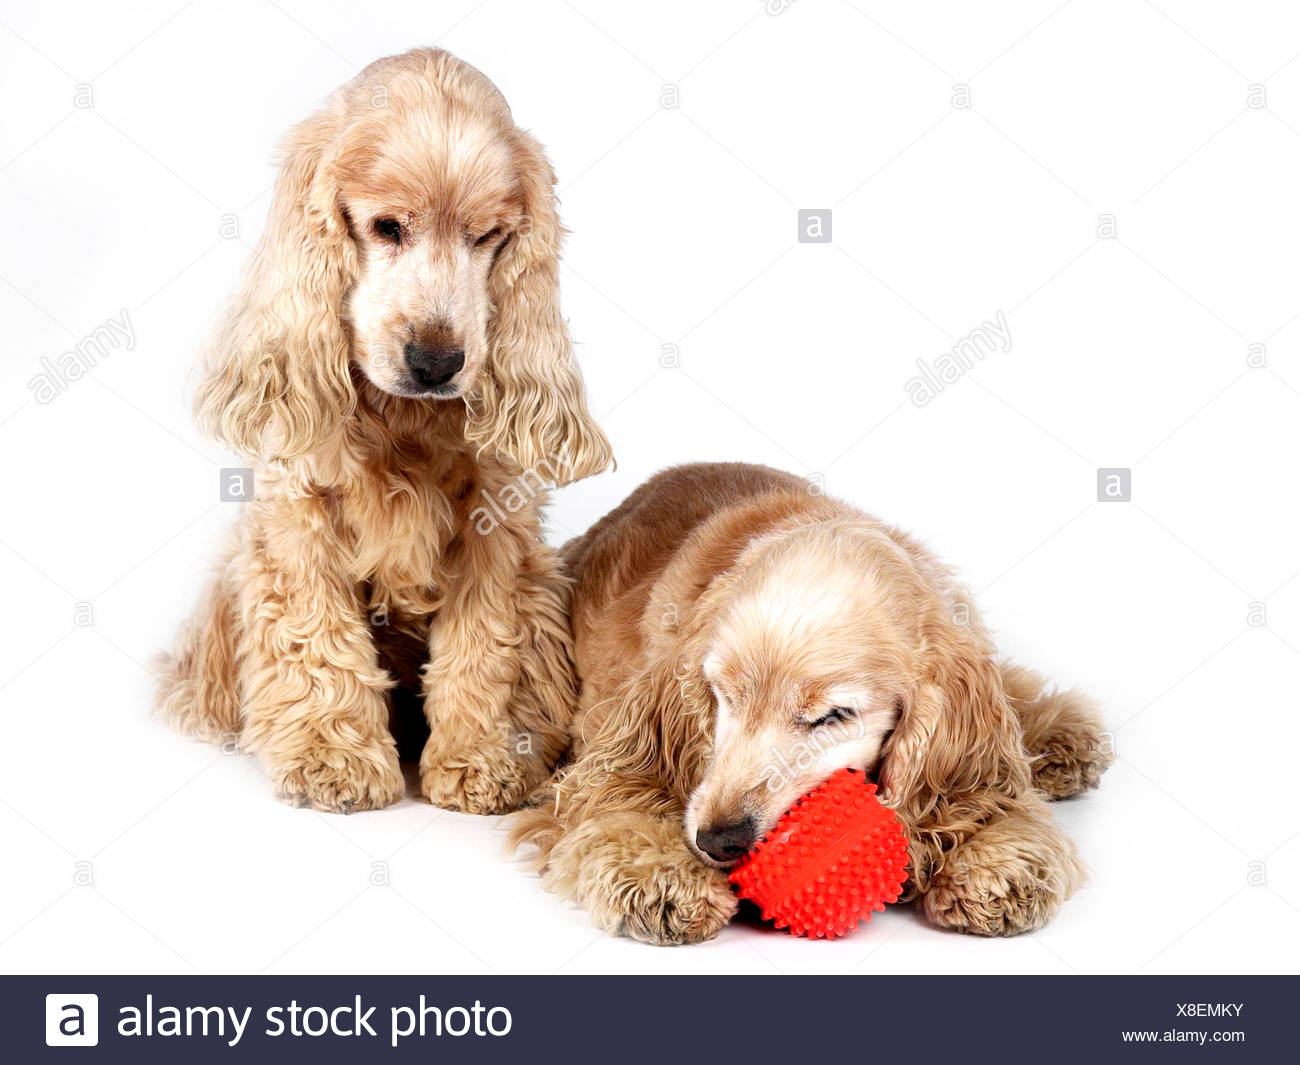 Two cocker spaniels with a ball, one happy one sad. - Stock Image